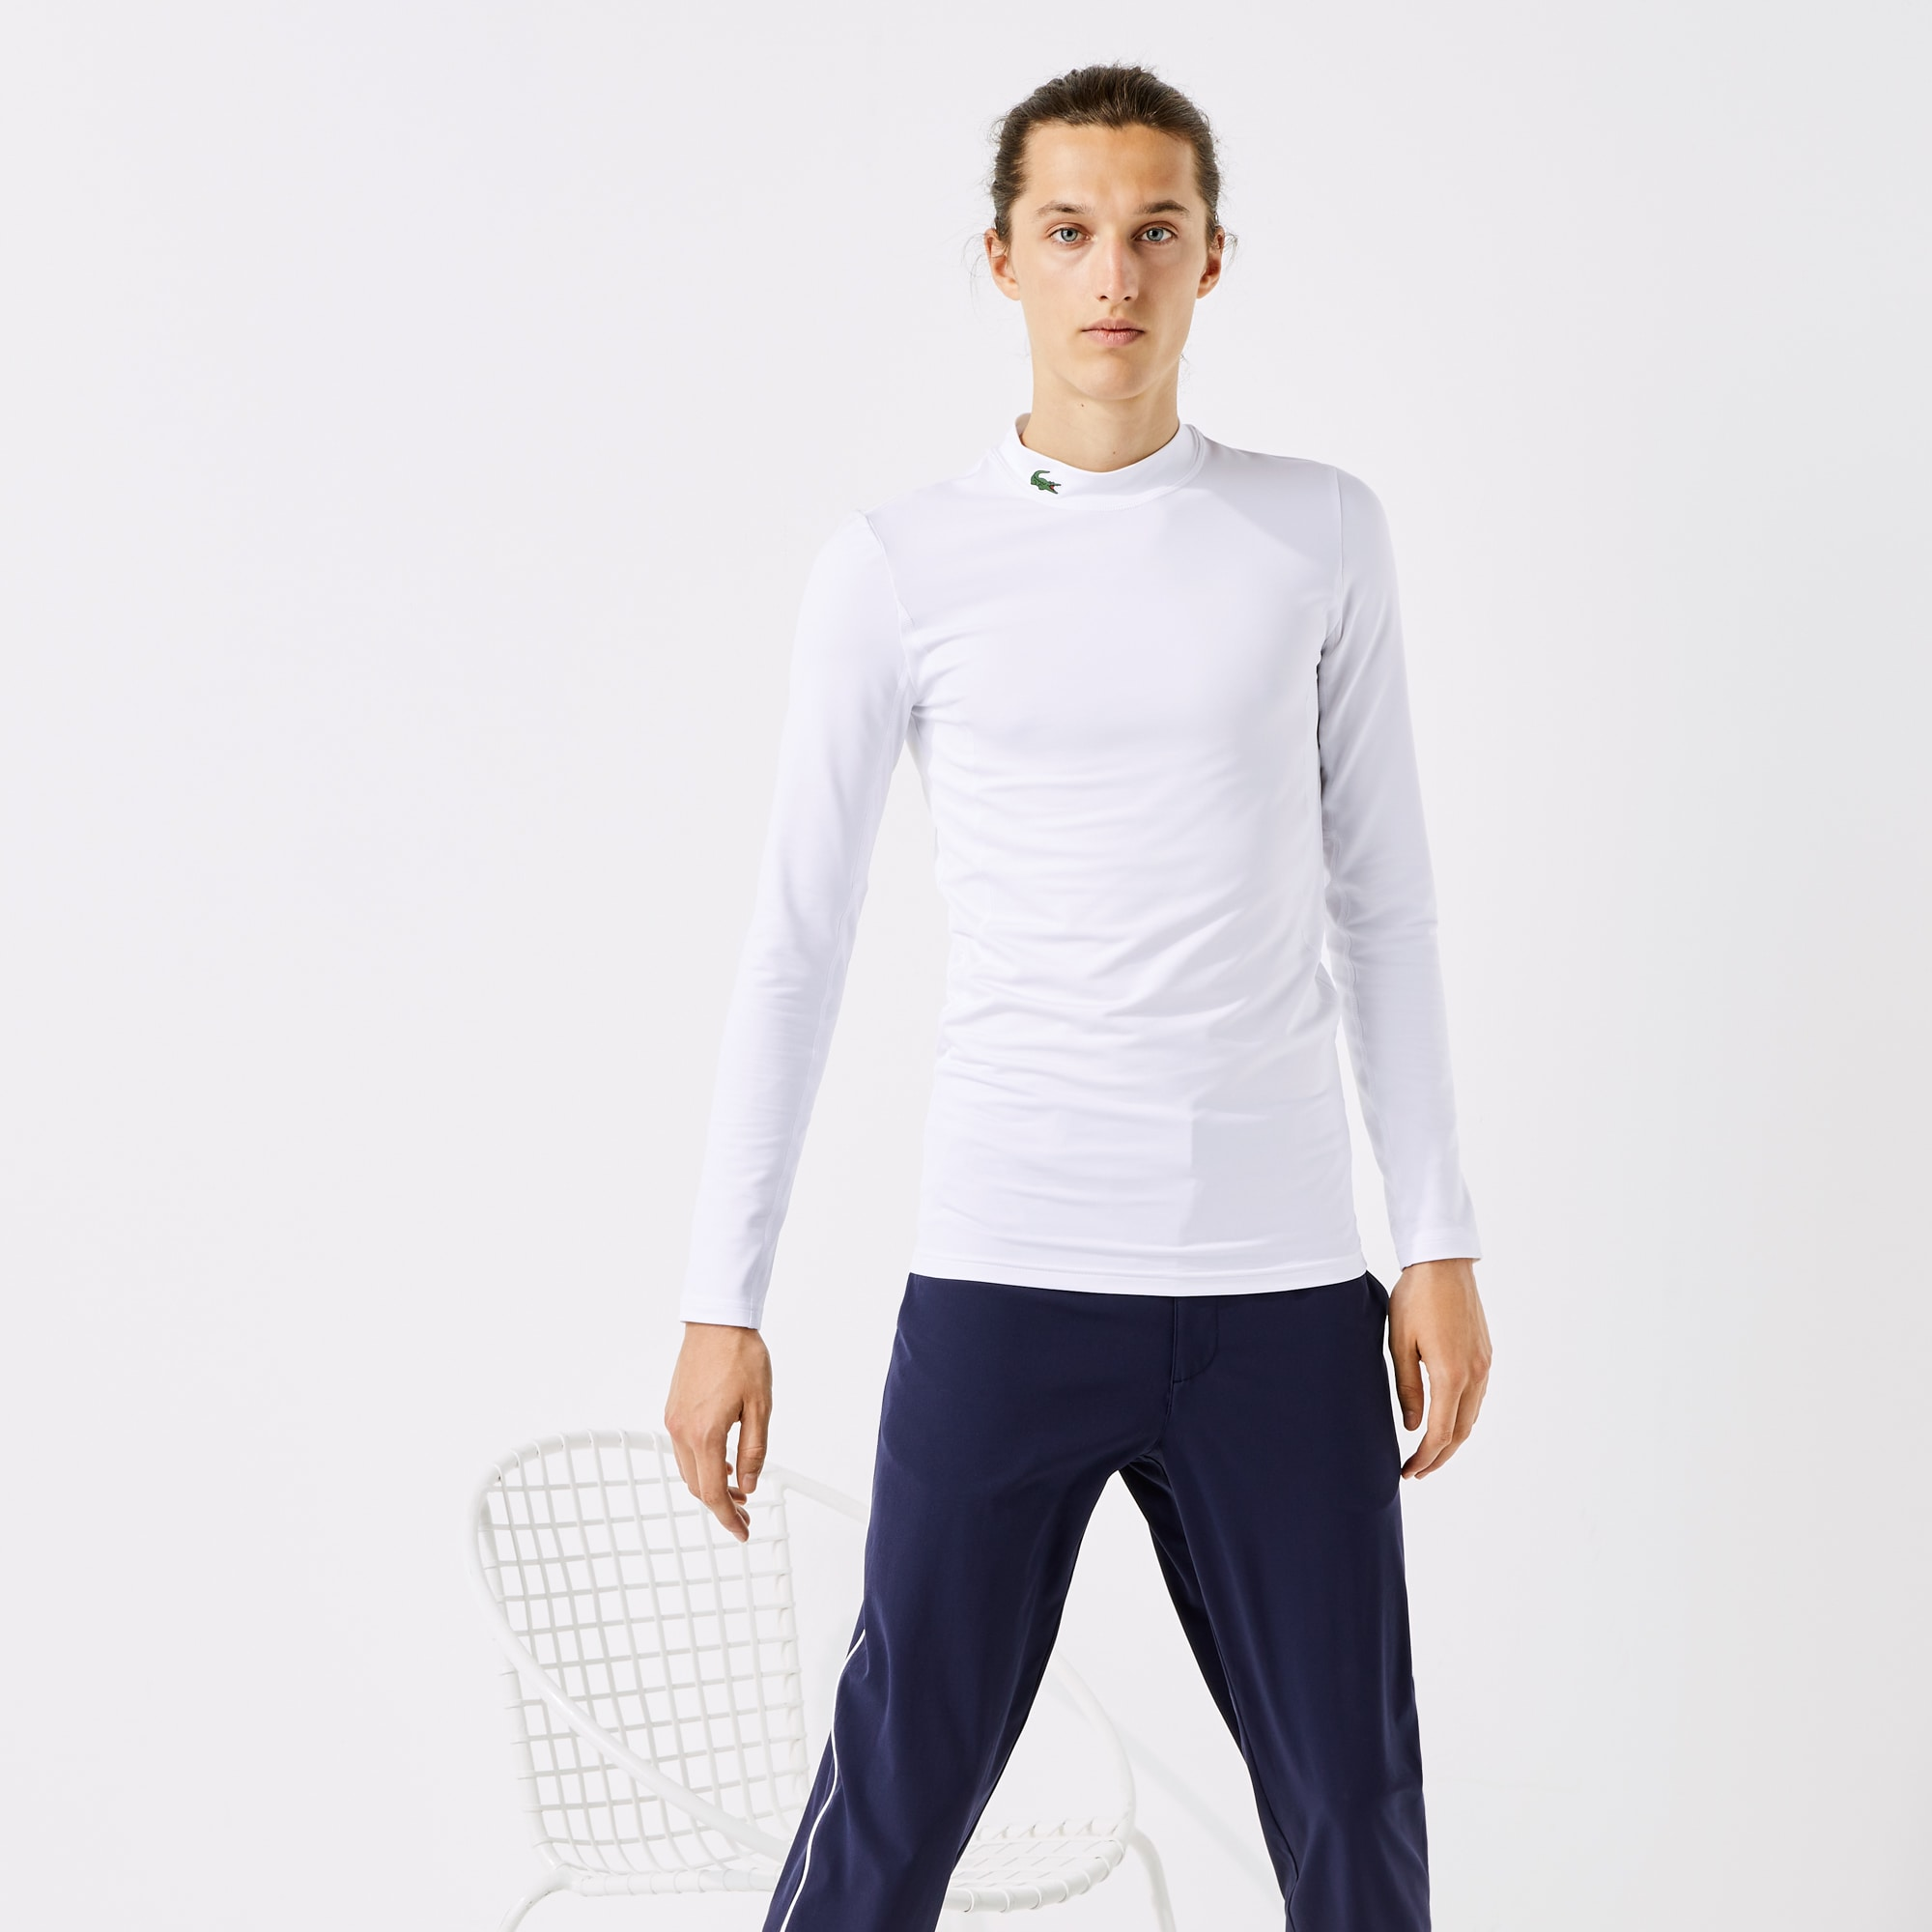 라코스테 스포츠 골프 티셔츠 Lacoste Mens SPORT Stand-Up Neck Technical Jersey Golf T-shirt